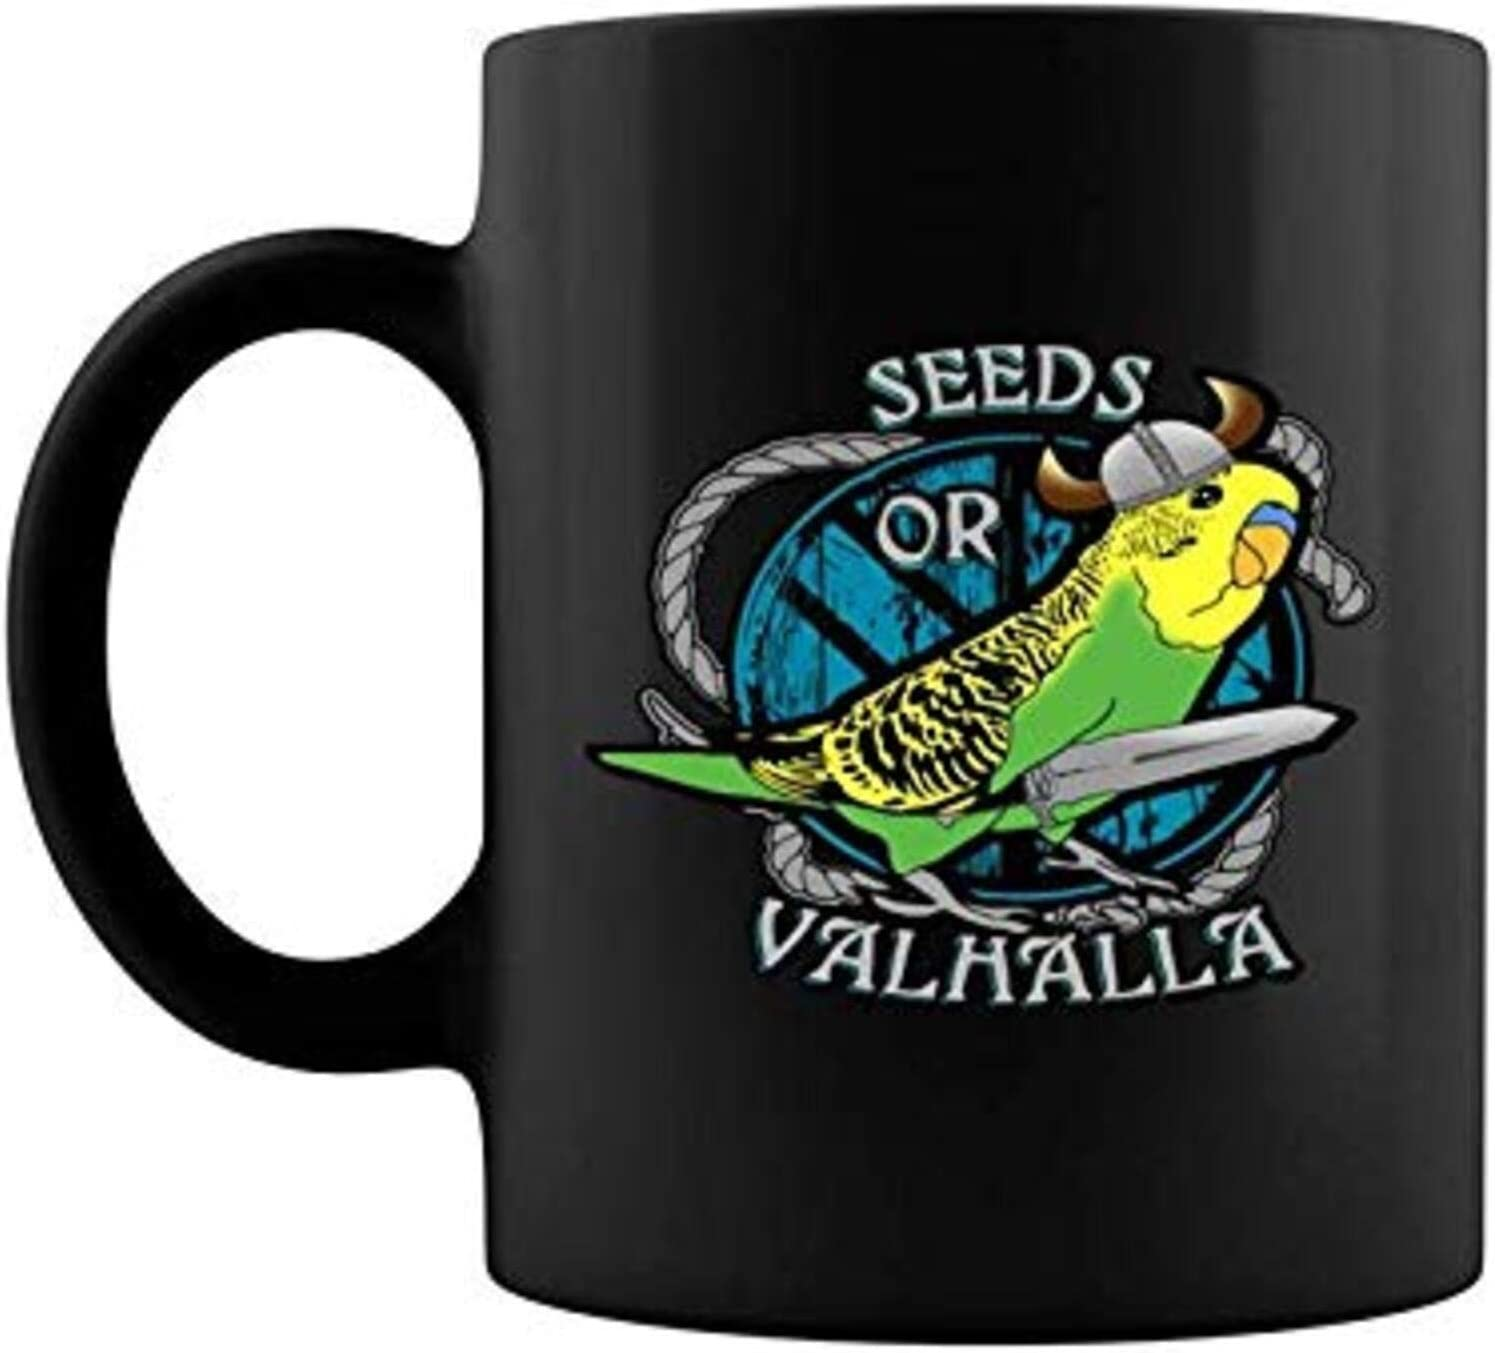 Seeds Or Valhalla Viking Birb Bird Funny Budgie Max 80% OFF Amp 11 15 Green Outlet sale feature